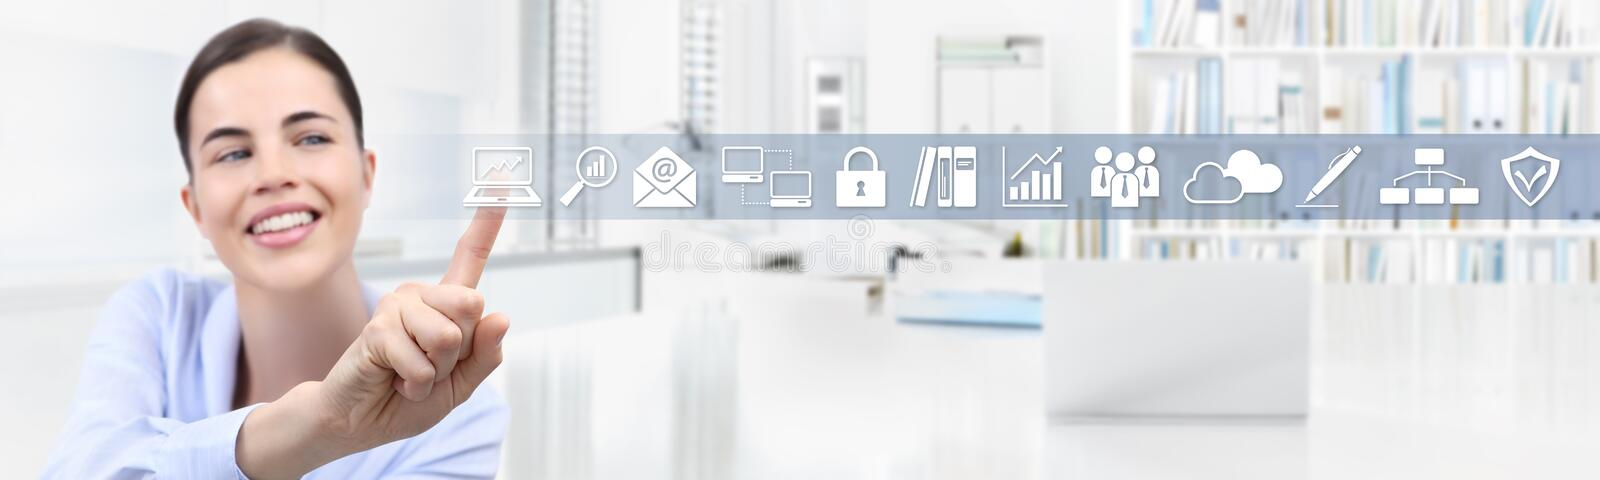 Office business work concept, hand of smiling woman touch screen royalty free stock photos